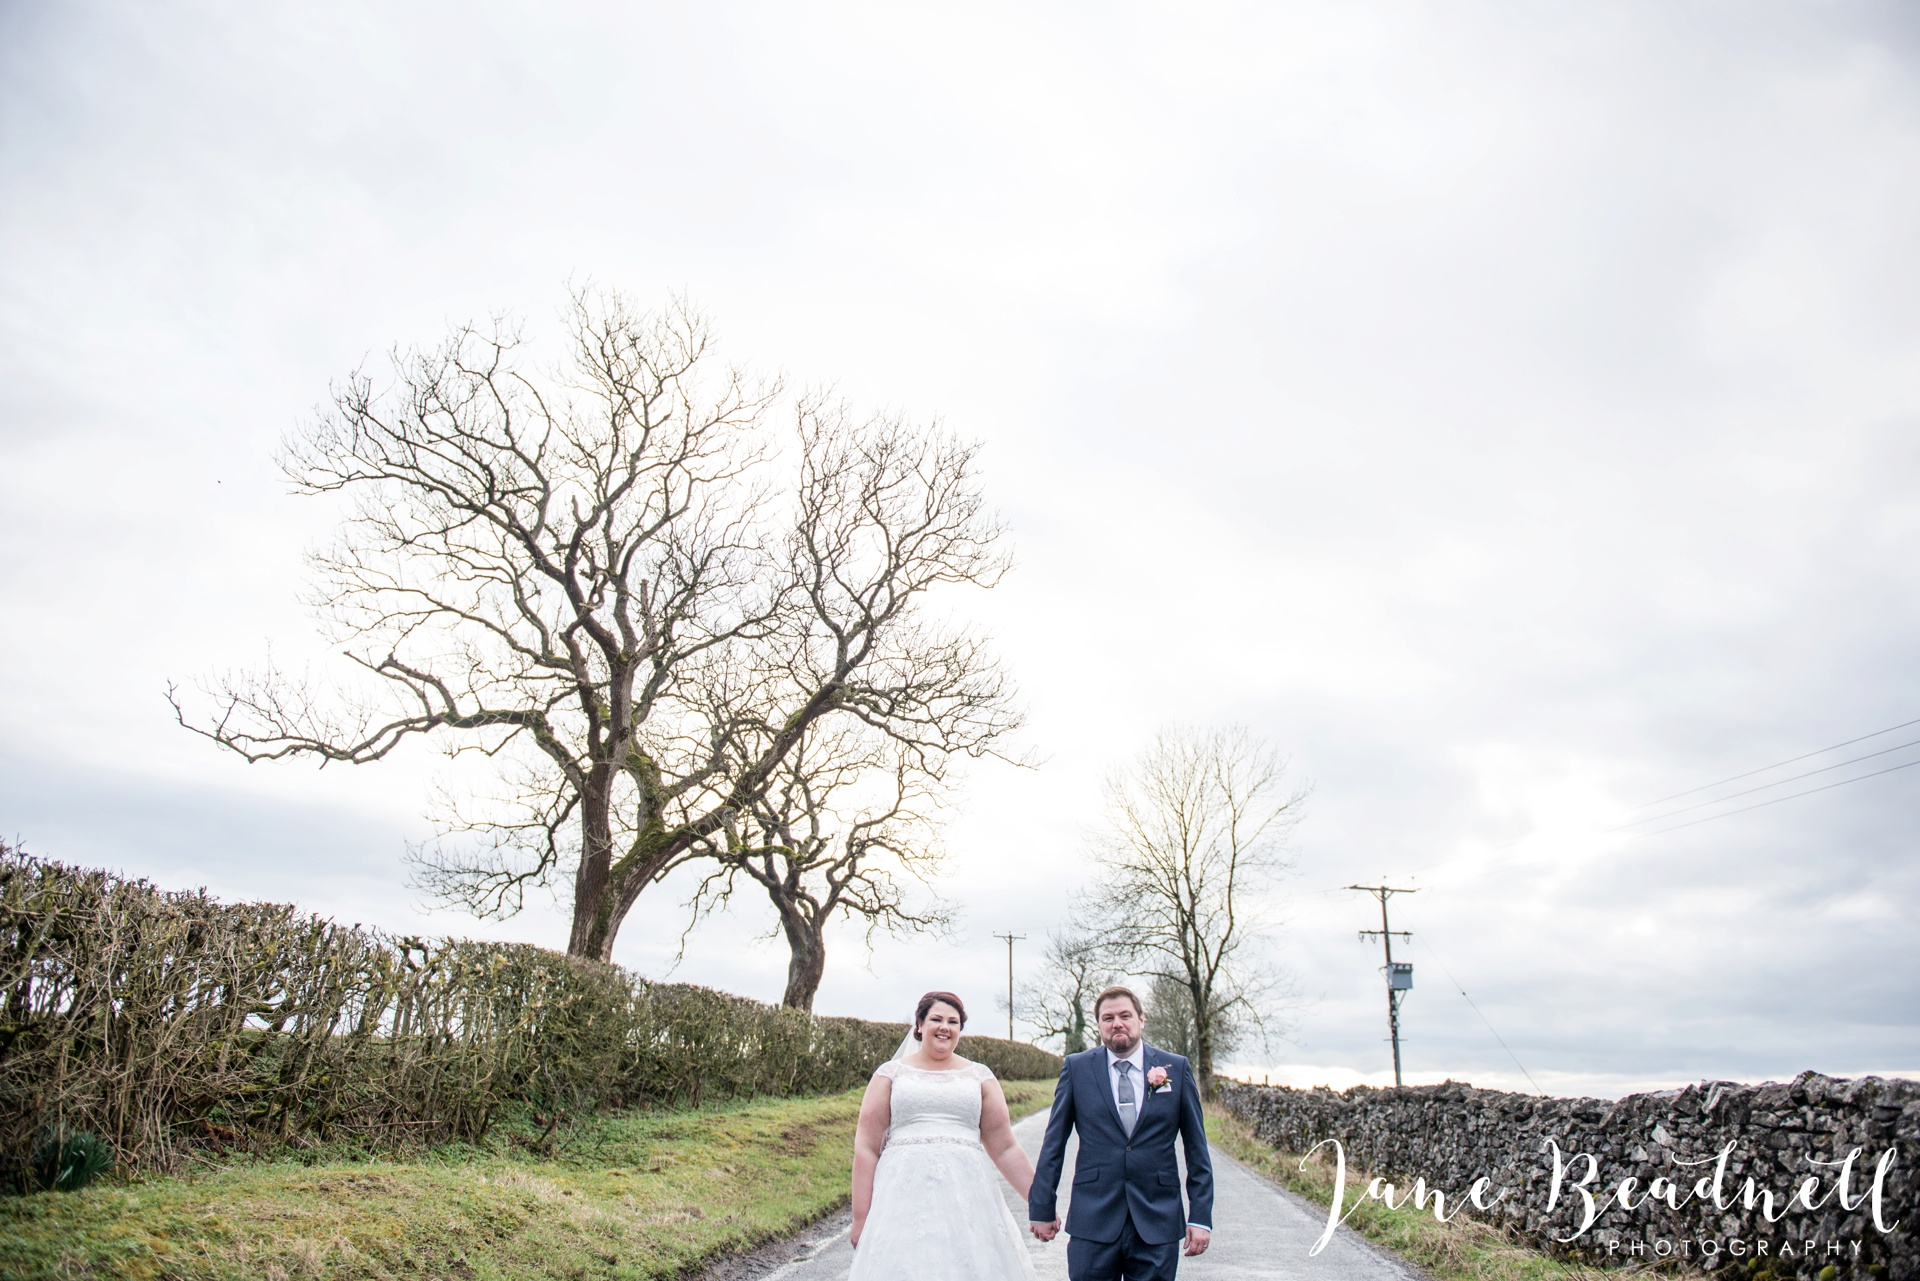 Cracoe Village Hall Wedding Photography by Jane Beadnell Photography fine art wedding photographer Yorkshire_0040